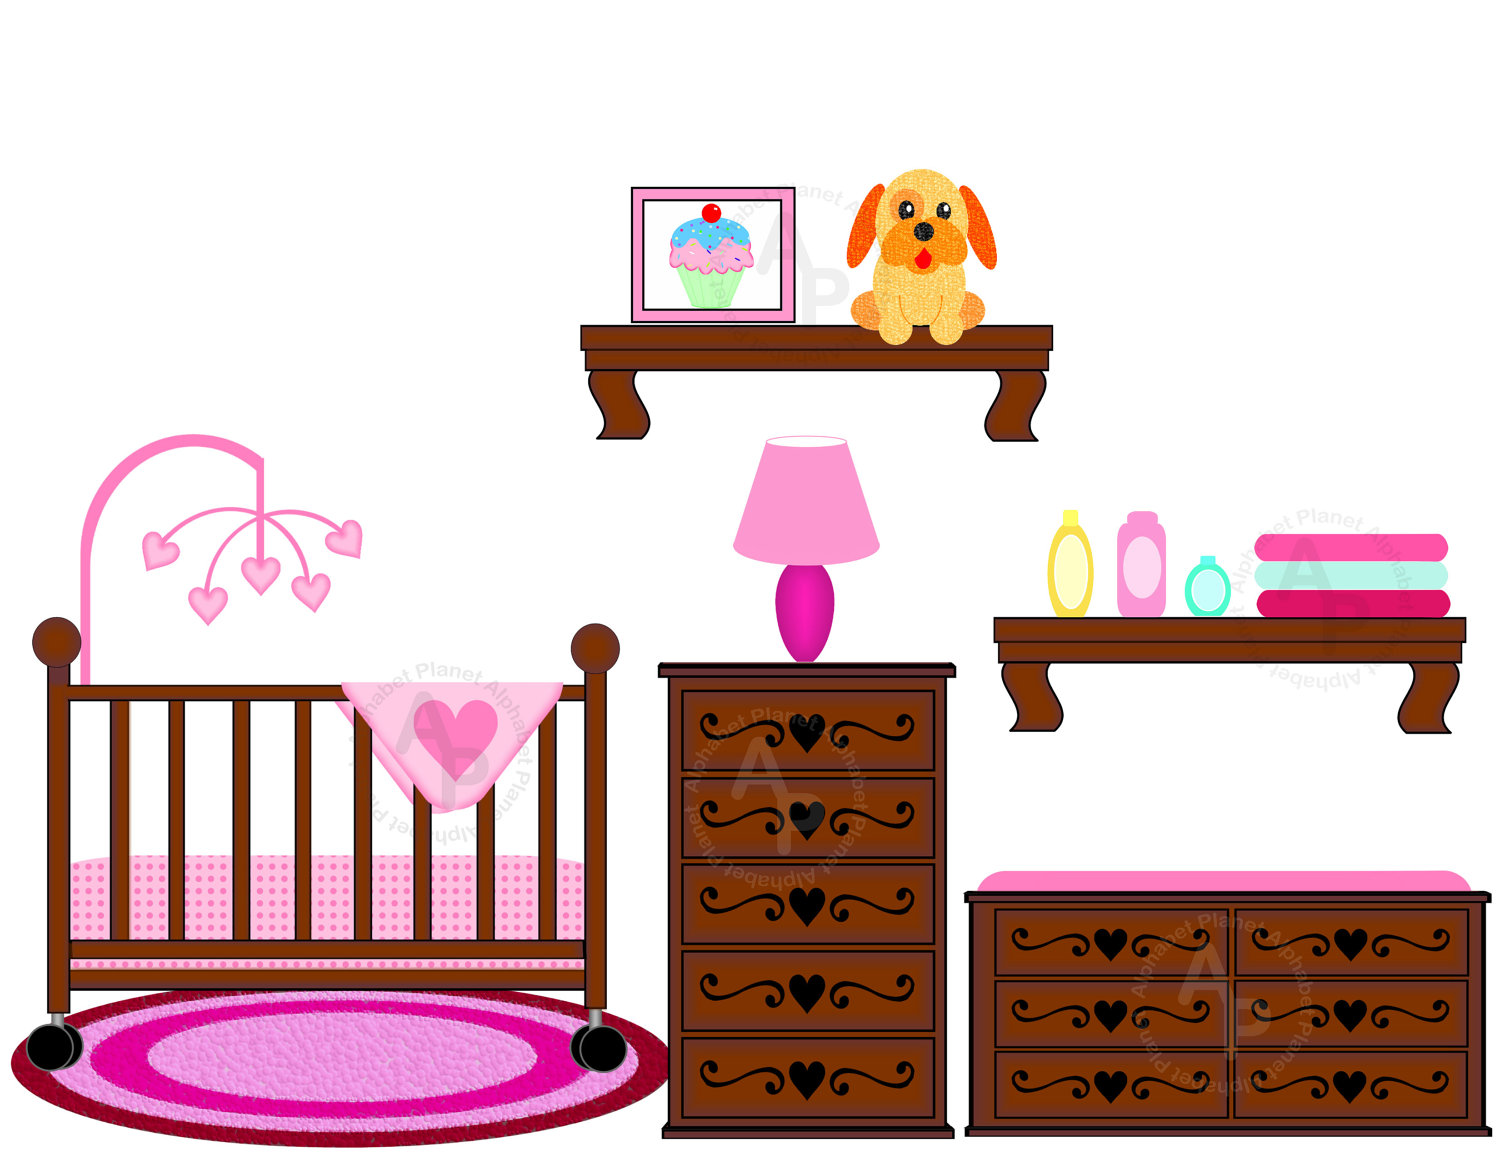 Baby in a crib clipart vector freeuse library Free Baby Crib Clipart, Download Free Clip Art, Free Clip Art on ... vector freeuse library